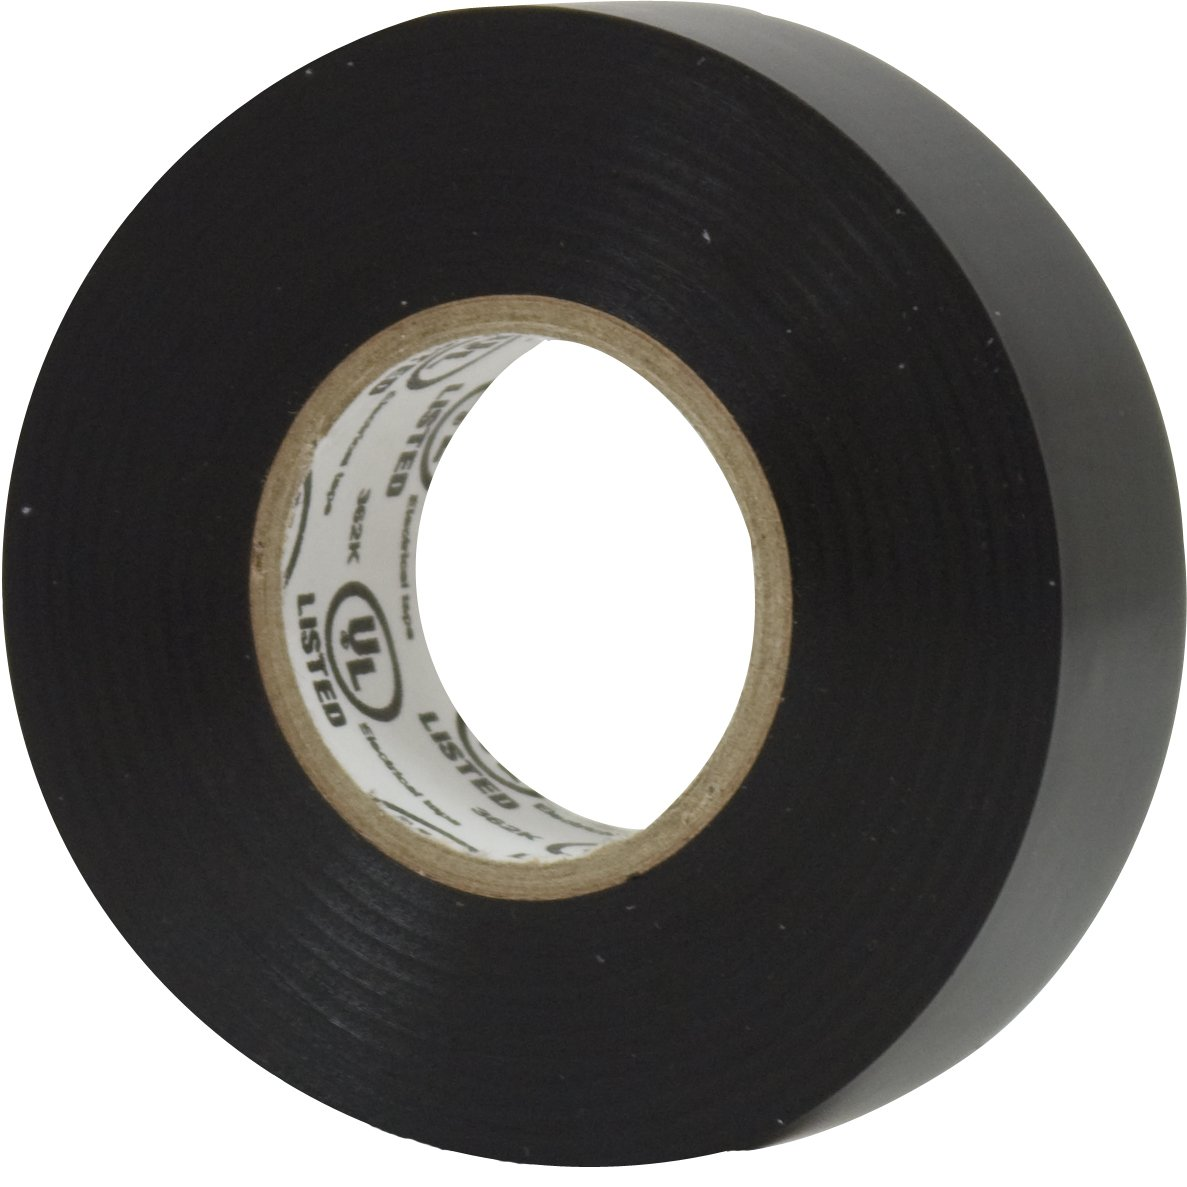 Power Gear Premium Vinyl Electrical Tape, ¾ In Wide, 66 Ft Long, Indoor/Outdoor Cable and Wire Tape, Weatherproof, Flame Retardant, Single Roll, UL Listed, Black, 18164